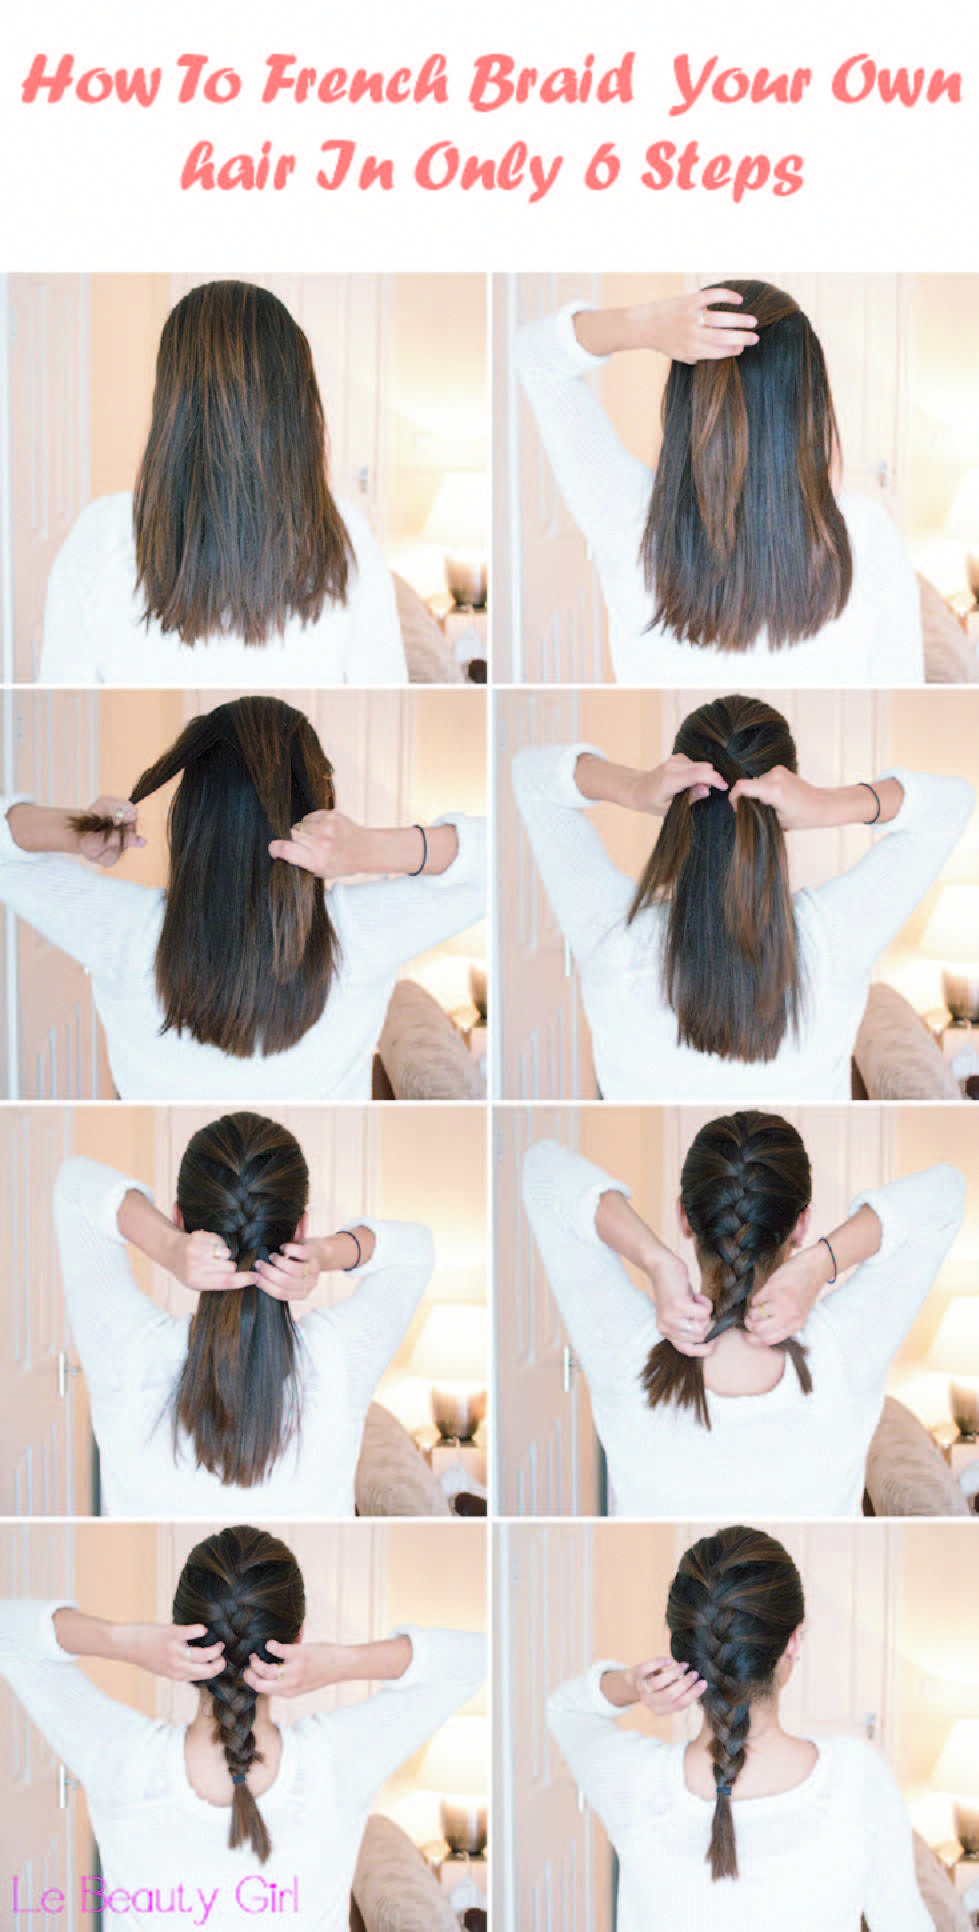 Fancy French Braids Want To Know How To French Braid Your Hair French Braids Are Very Easy French Braids Tutorial Short Hair Tutorial Braids For Short Hair